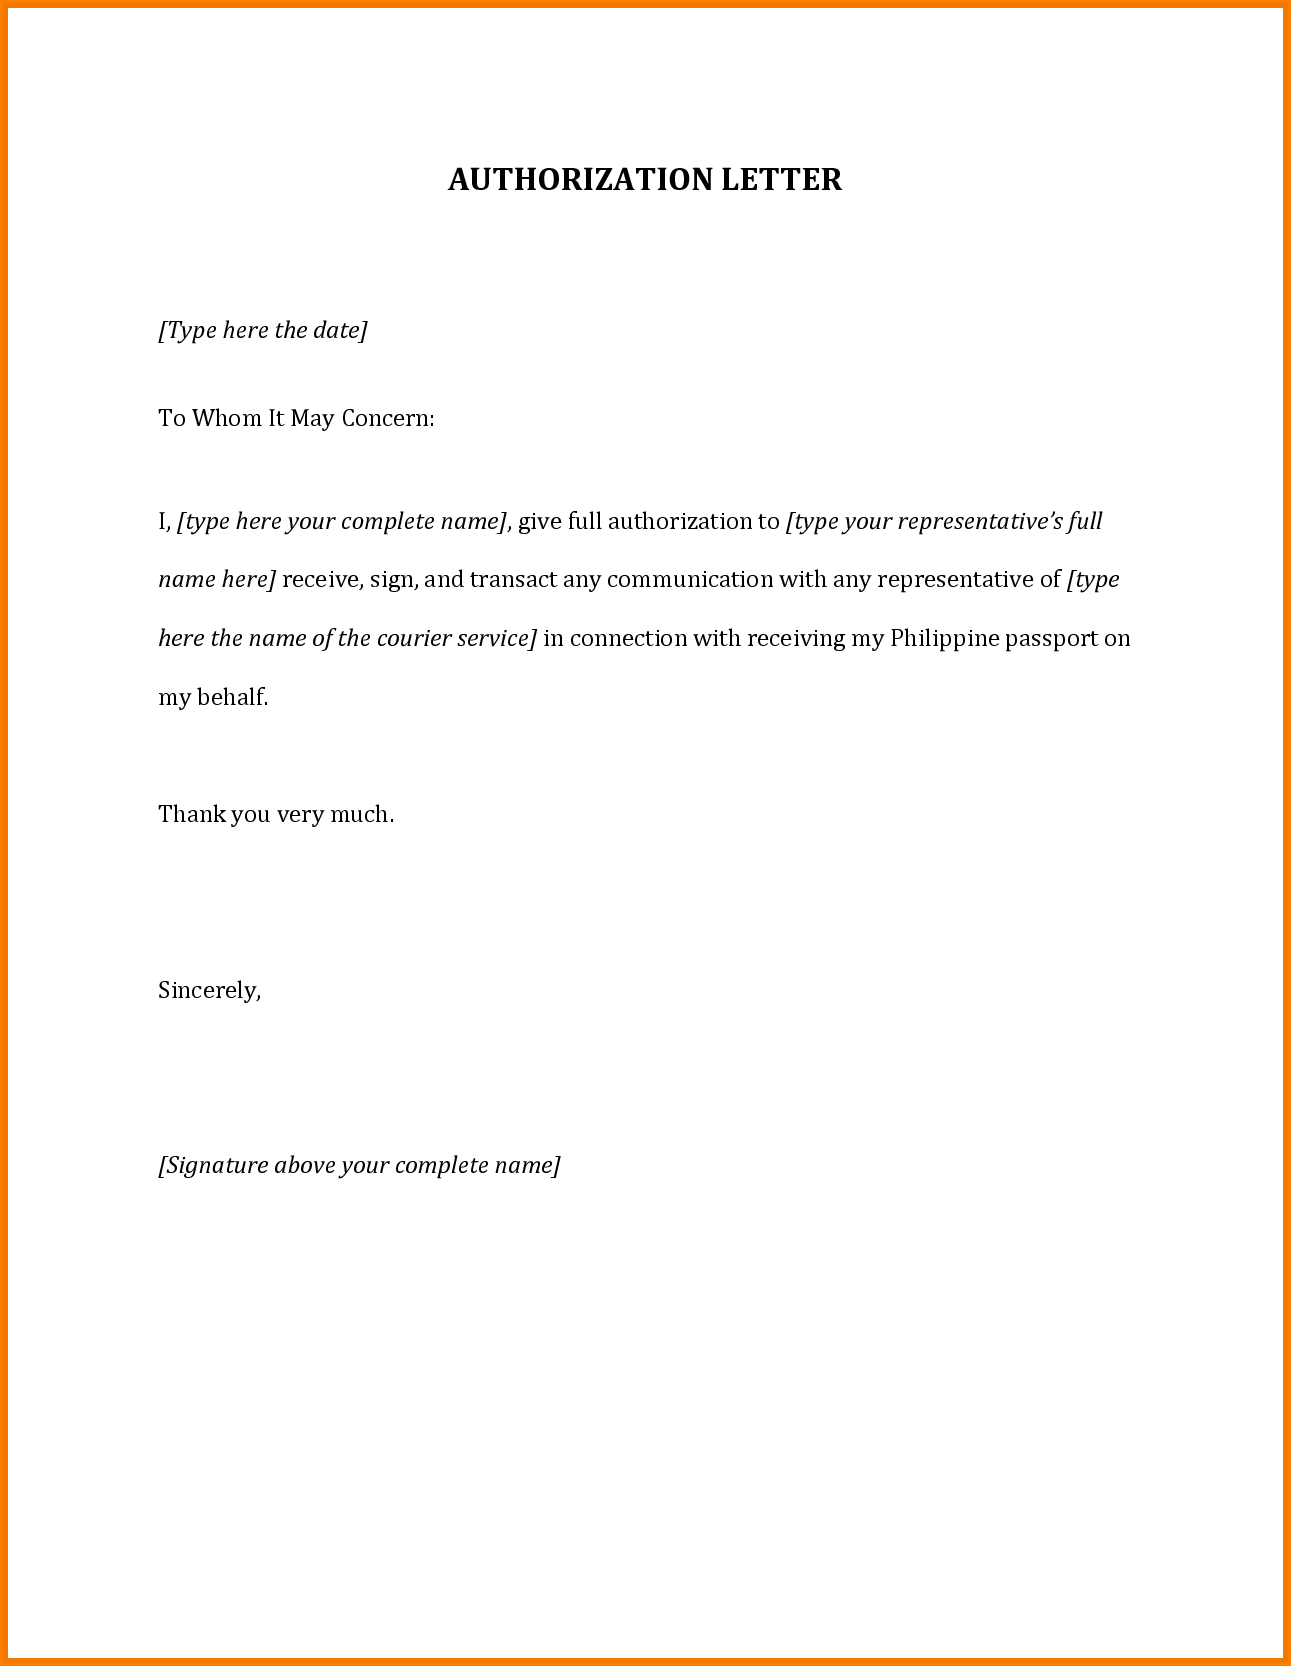 Authorization Letter For Passportmple Travel  Home Design Idea